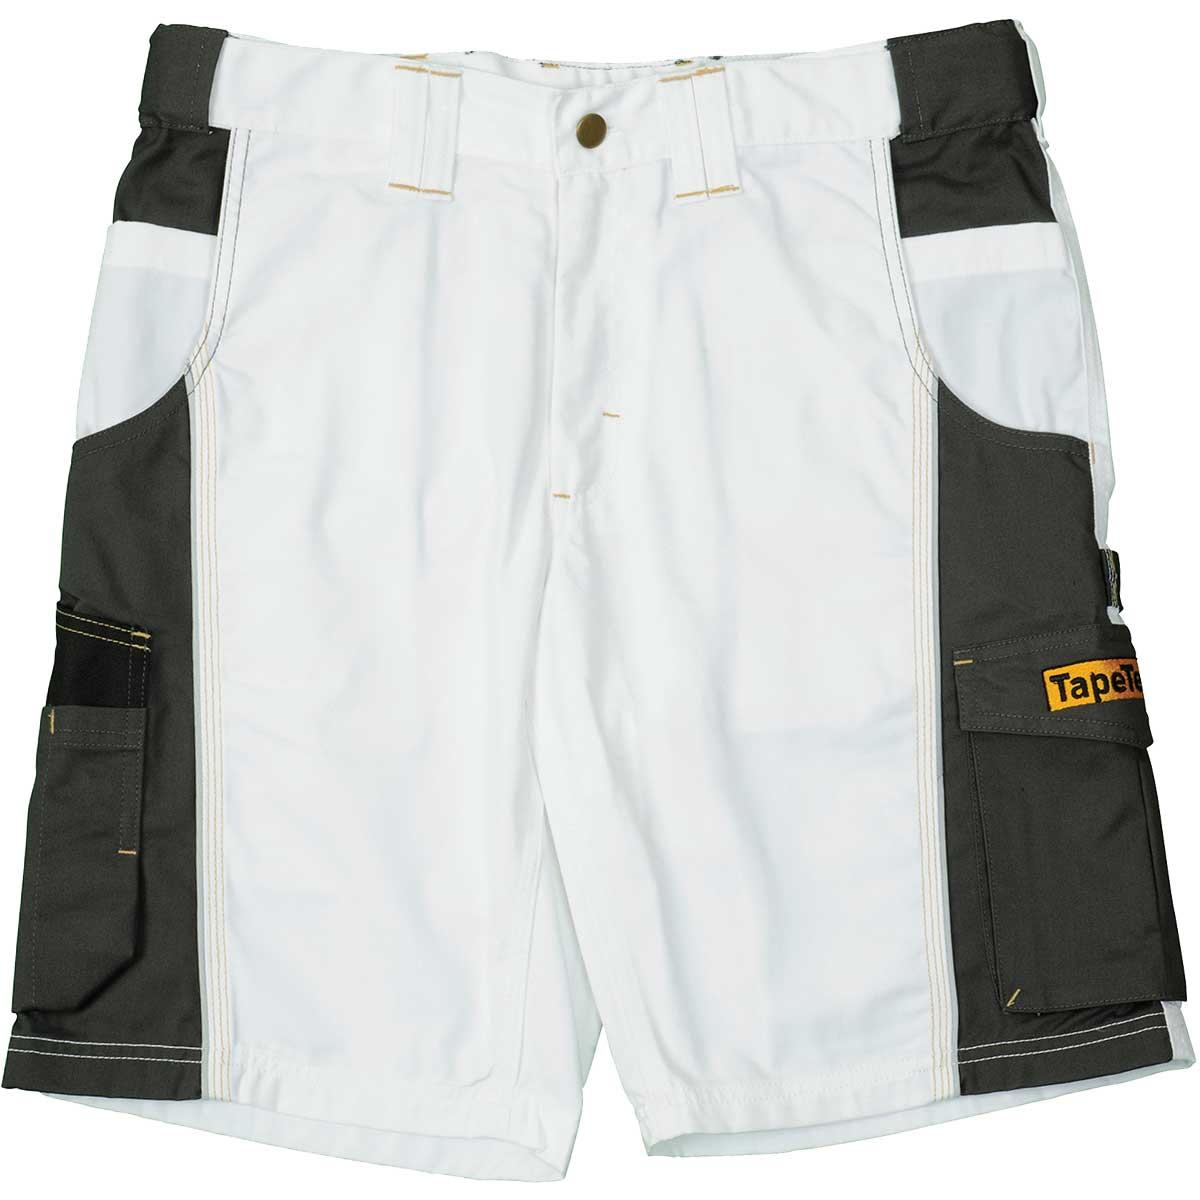 TapeTech Premium Work Shorts Size - 48